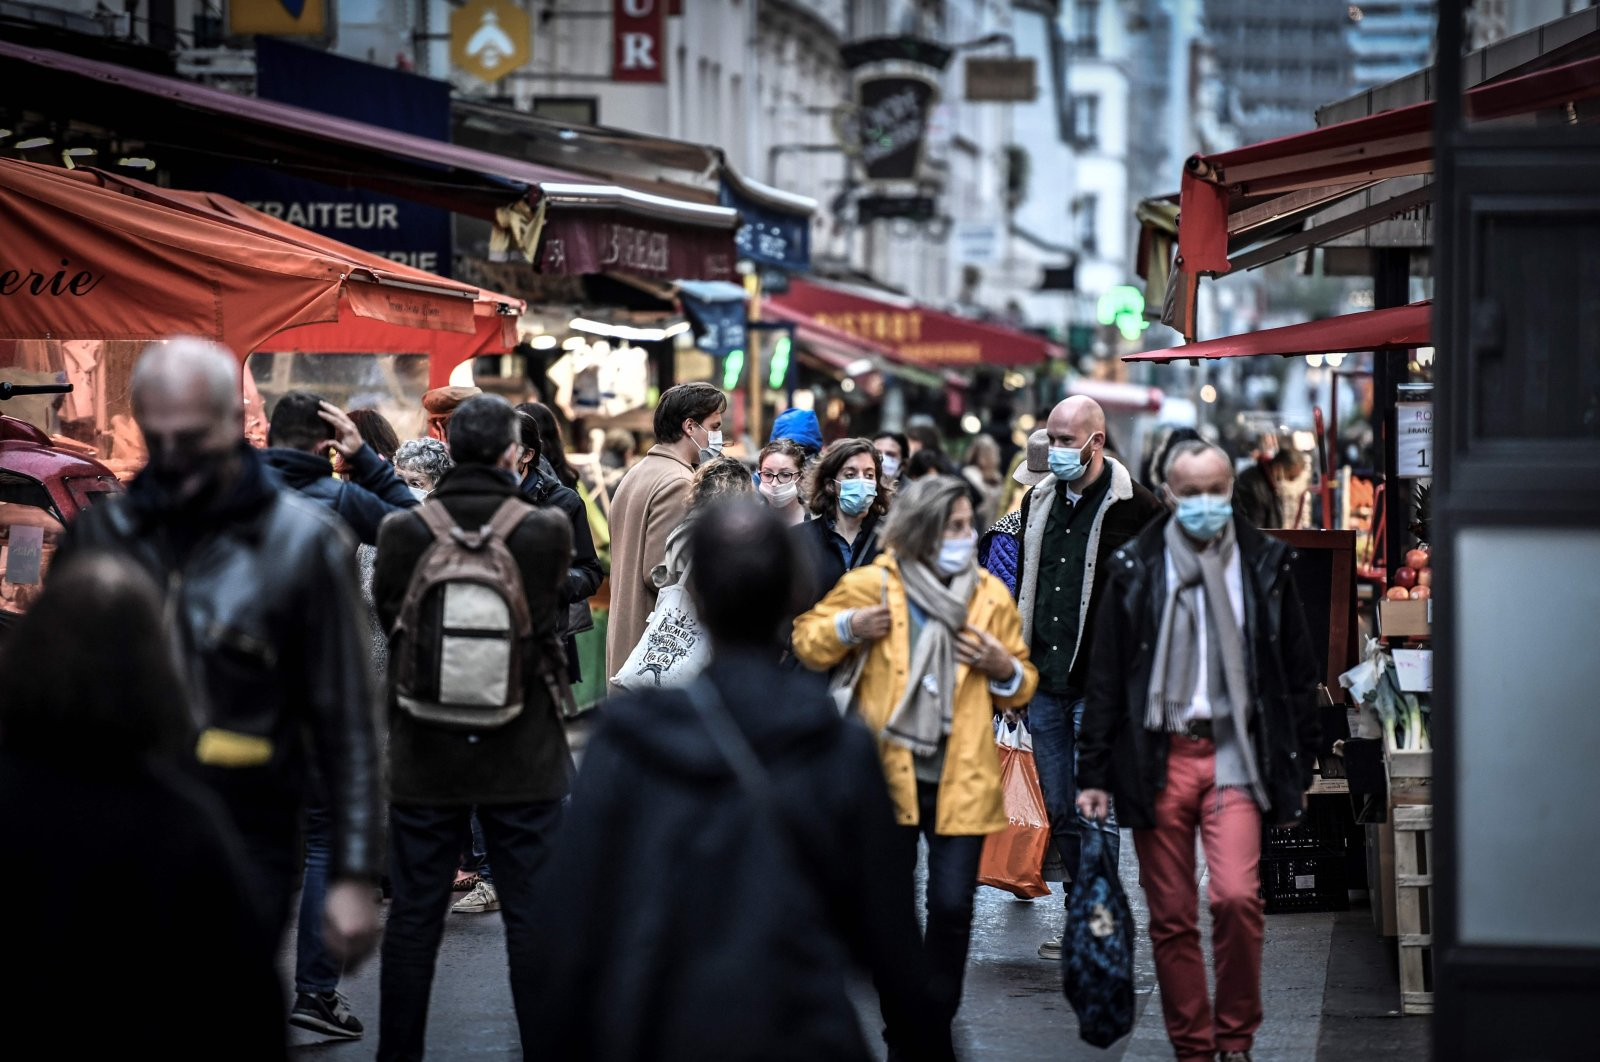 People, wearing face masks, shop in Paris on the second day of a second national general lockdown by the French government to contain the spread of COVID-19, France, Oct. 31, 2020. (AFP Photo)